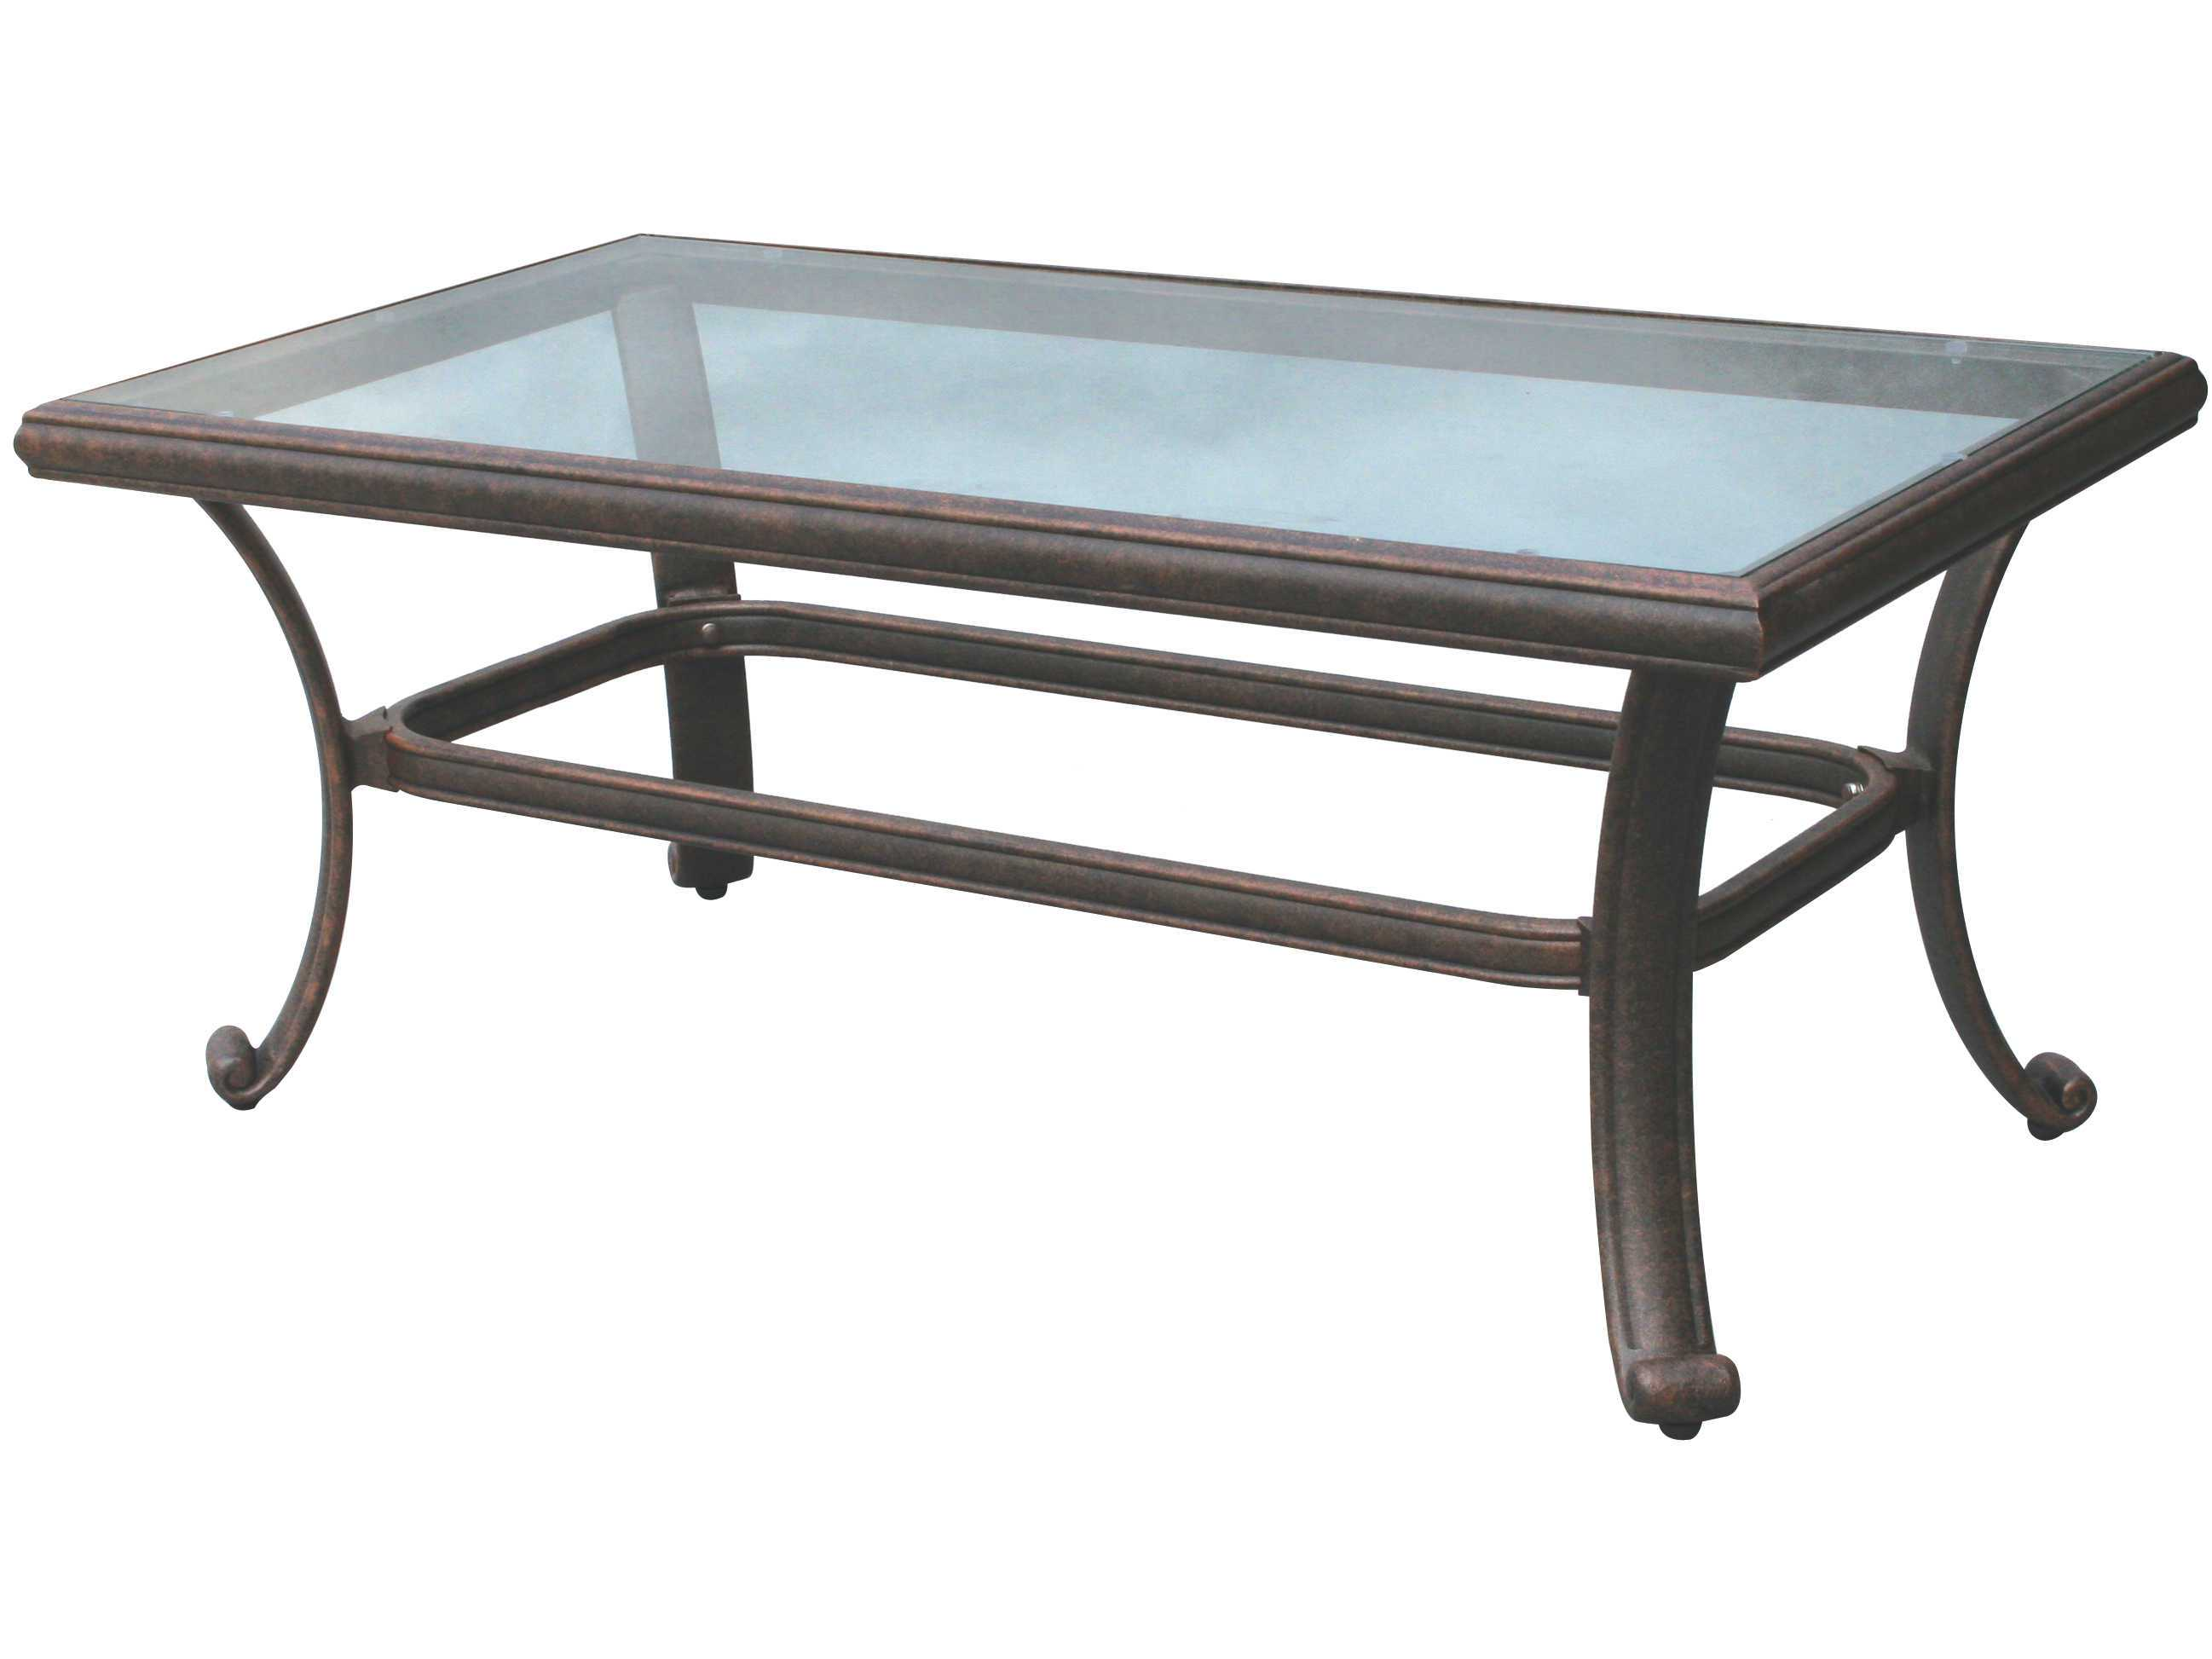 Darlee Outdoor Living Glass Top Aluminum Antique Bronze 24l X 42w Rectangular Coffee Table Dl50 B